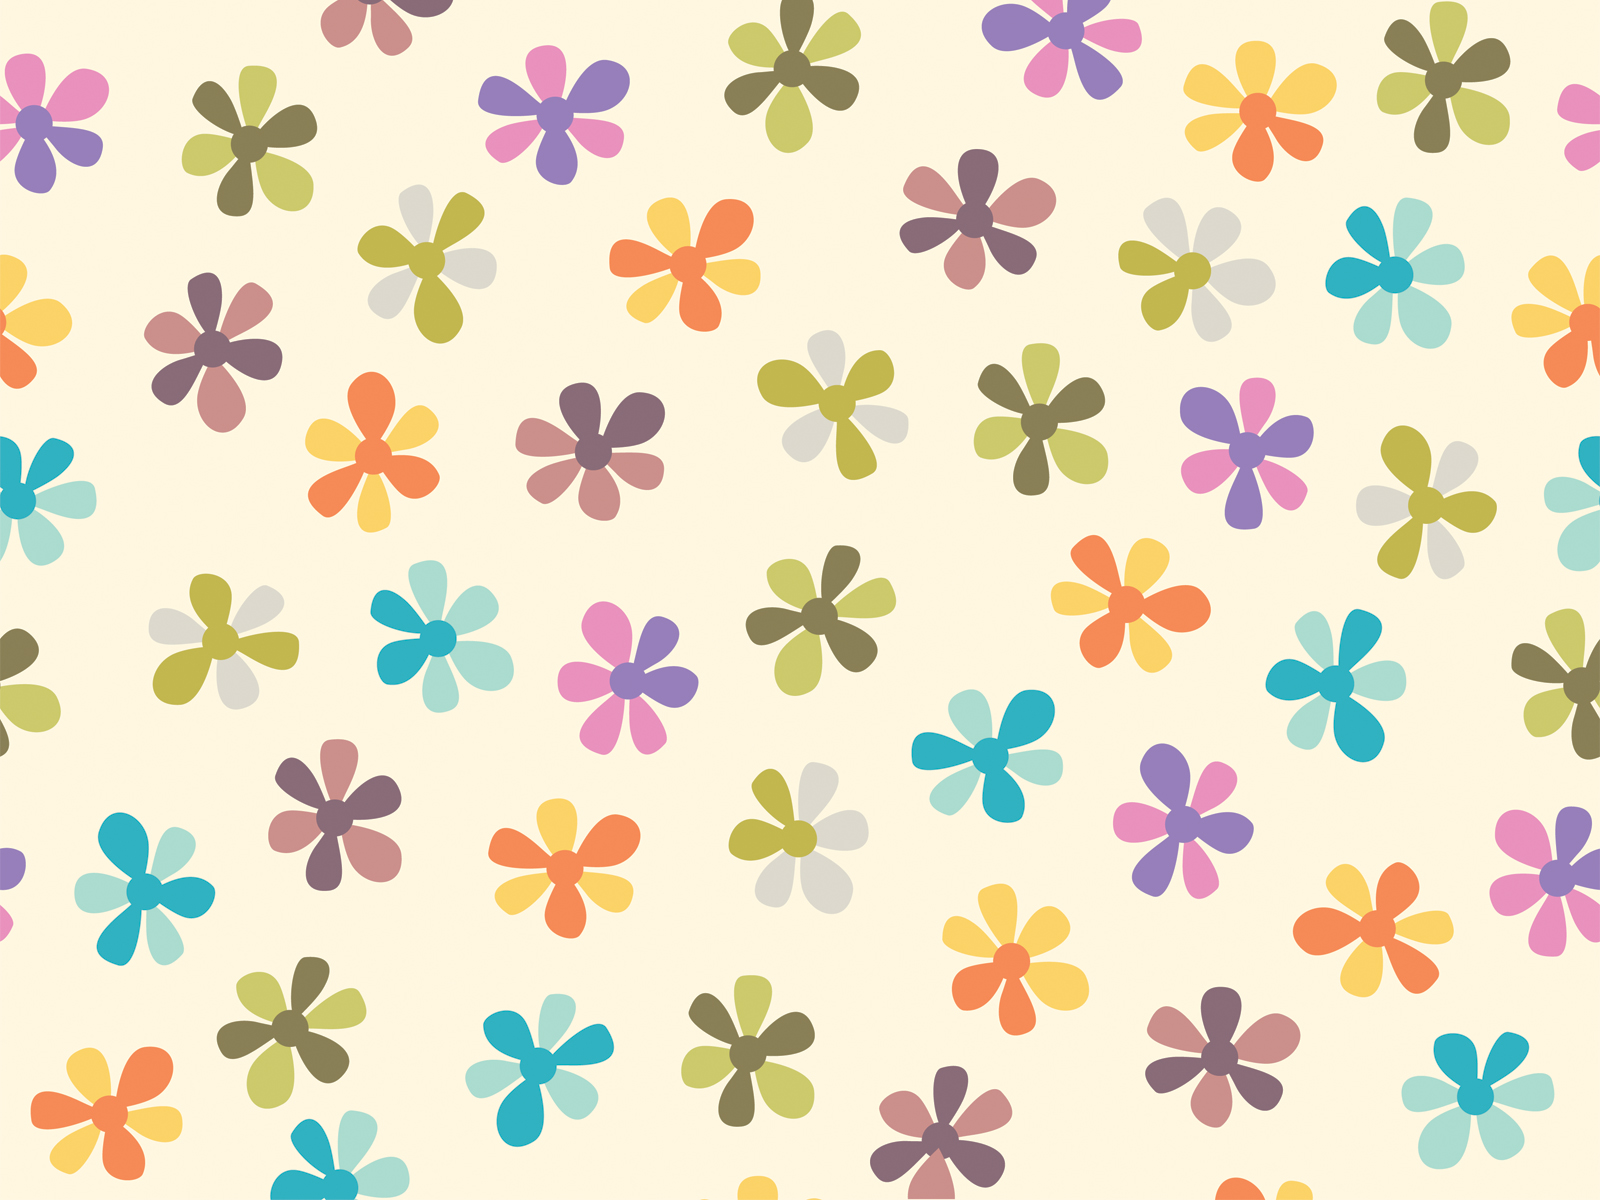 Flower patterns backgrounds